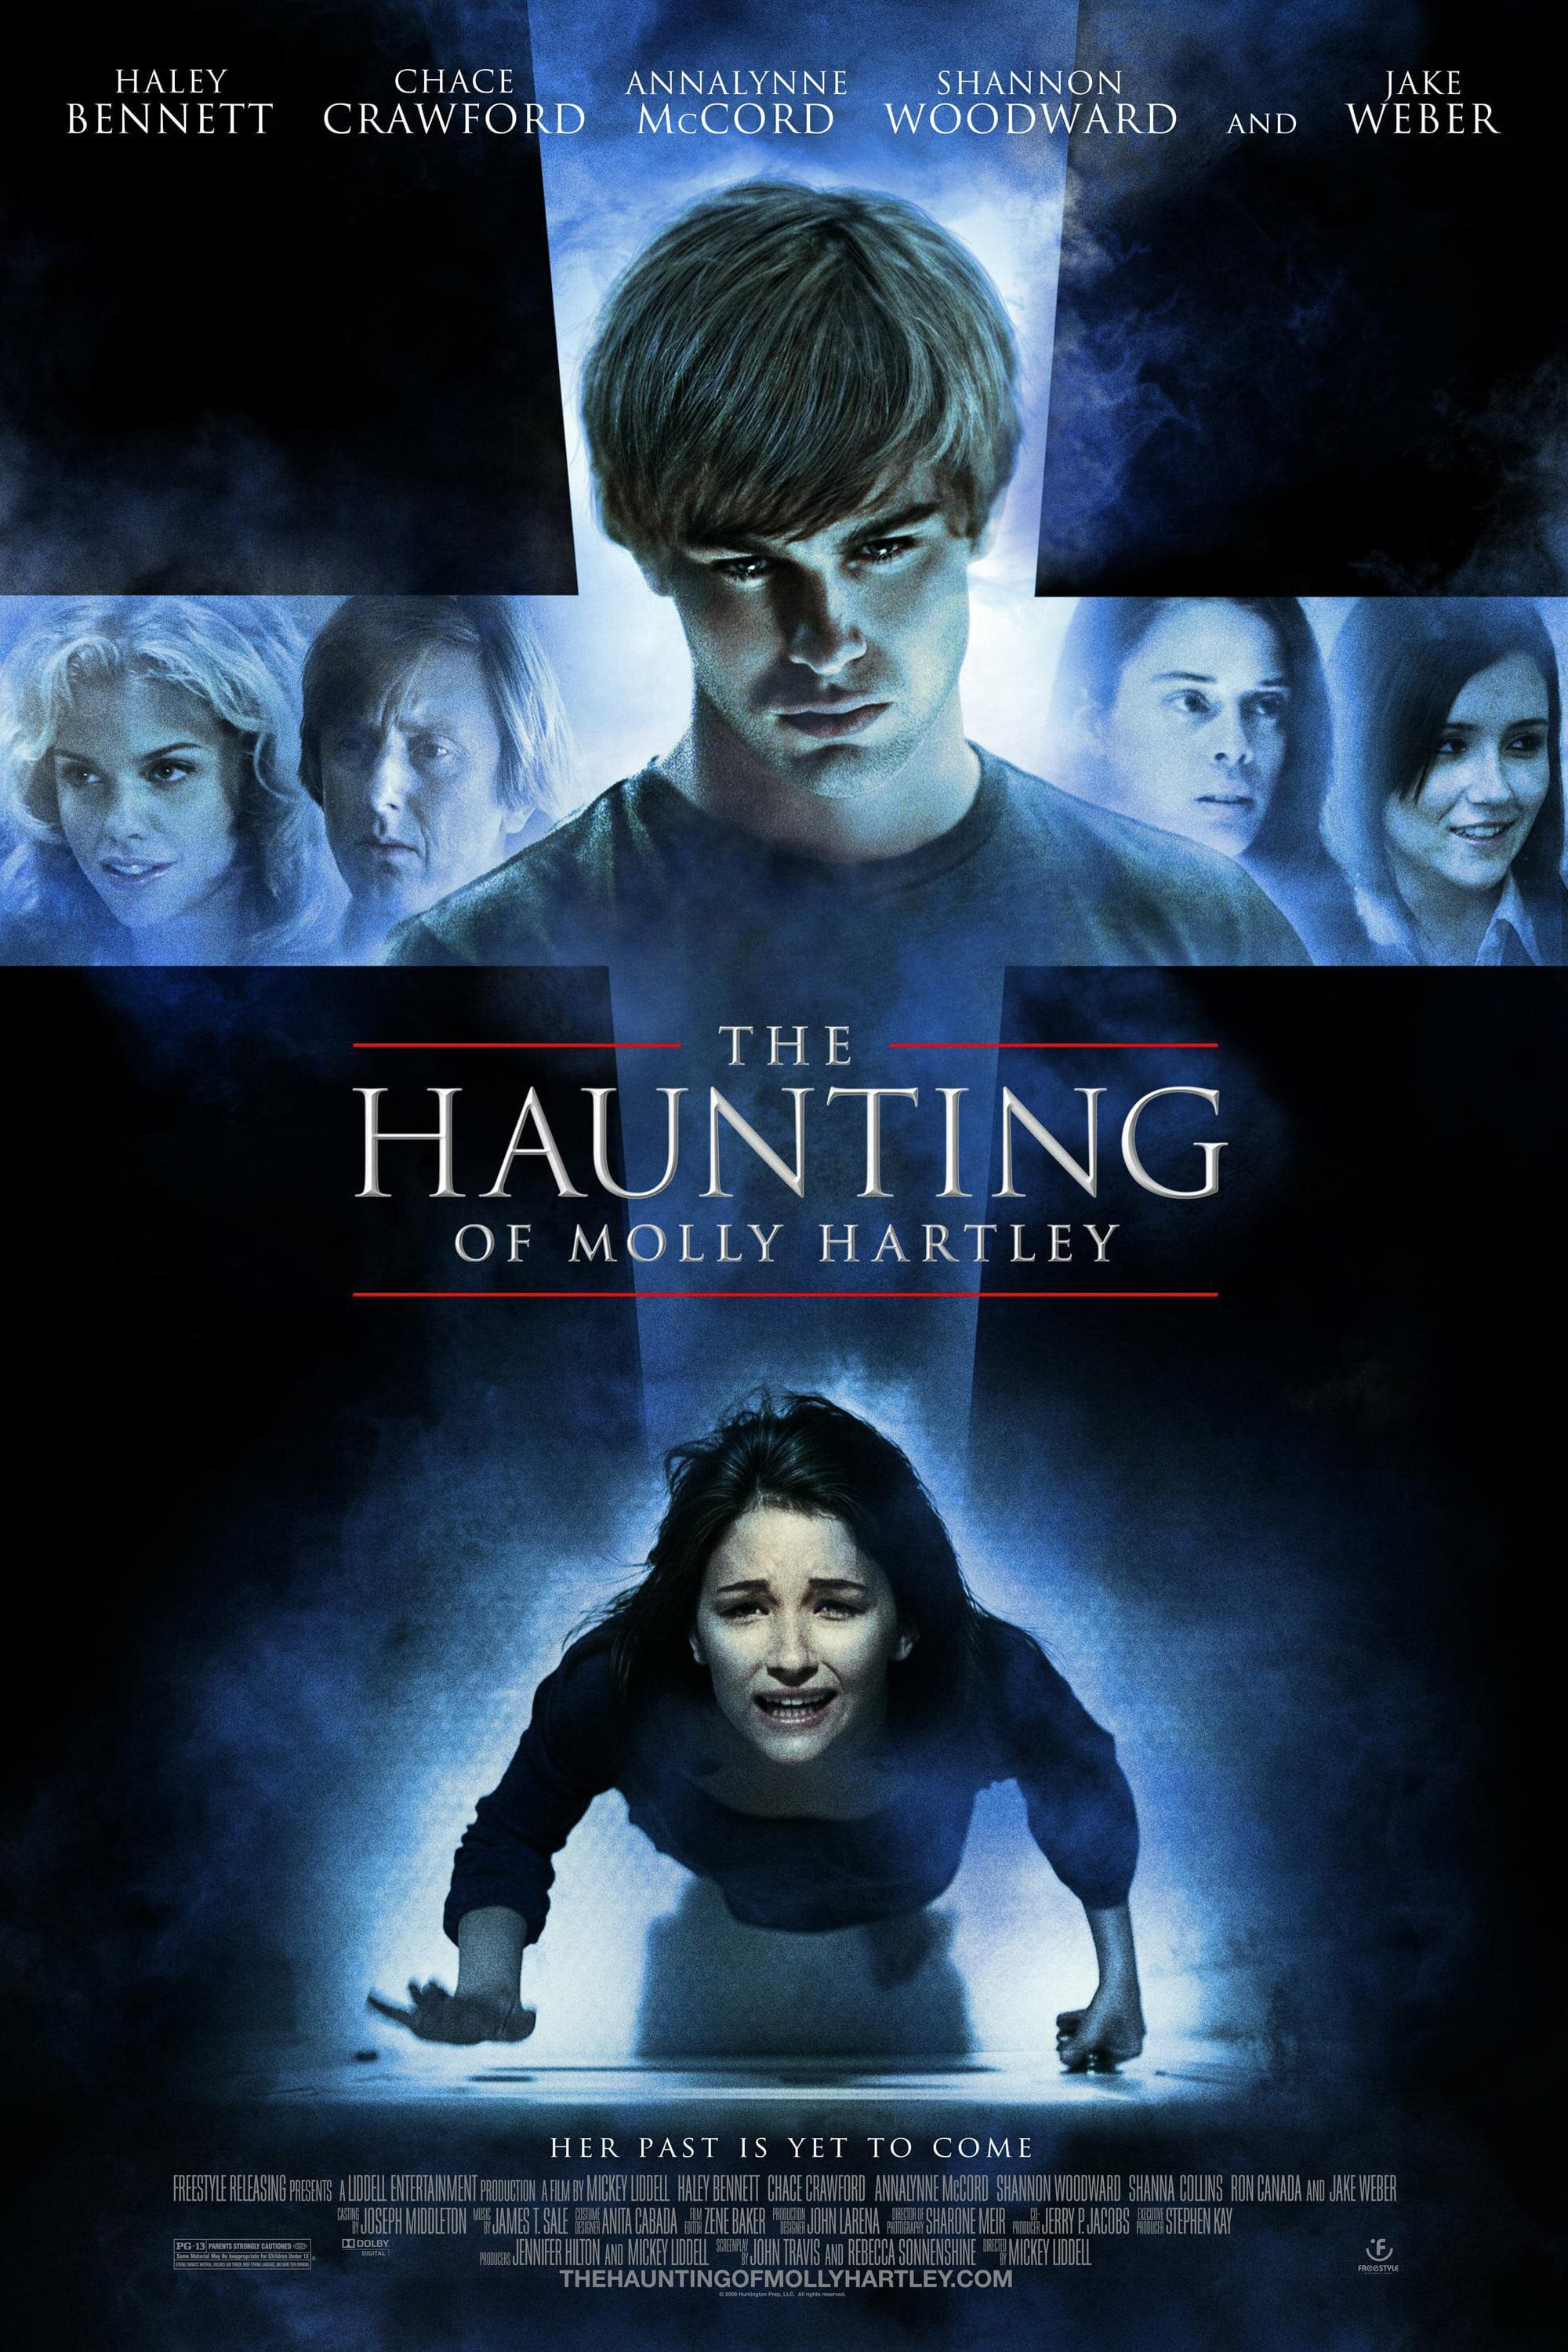 Ajoutez The Haunting of Molly Hartley - 2009 aux favoris